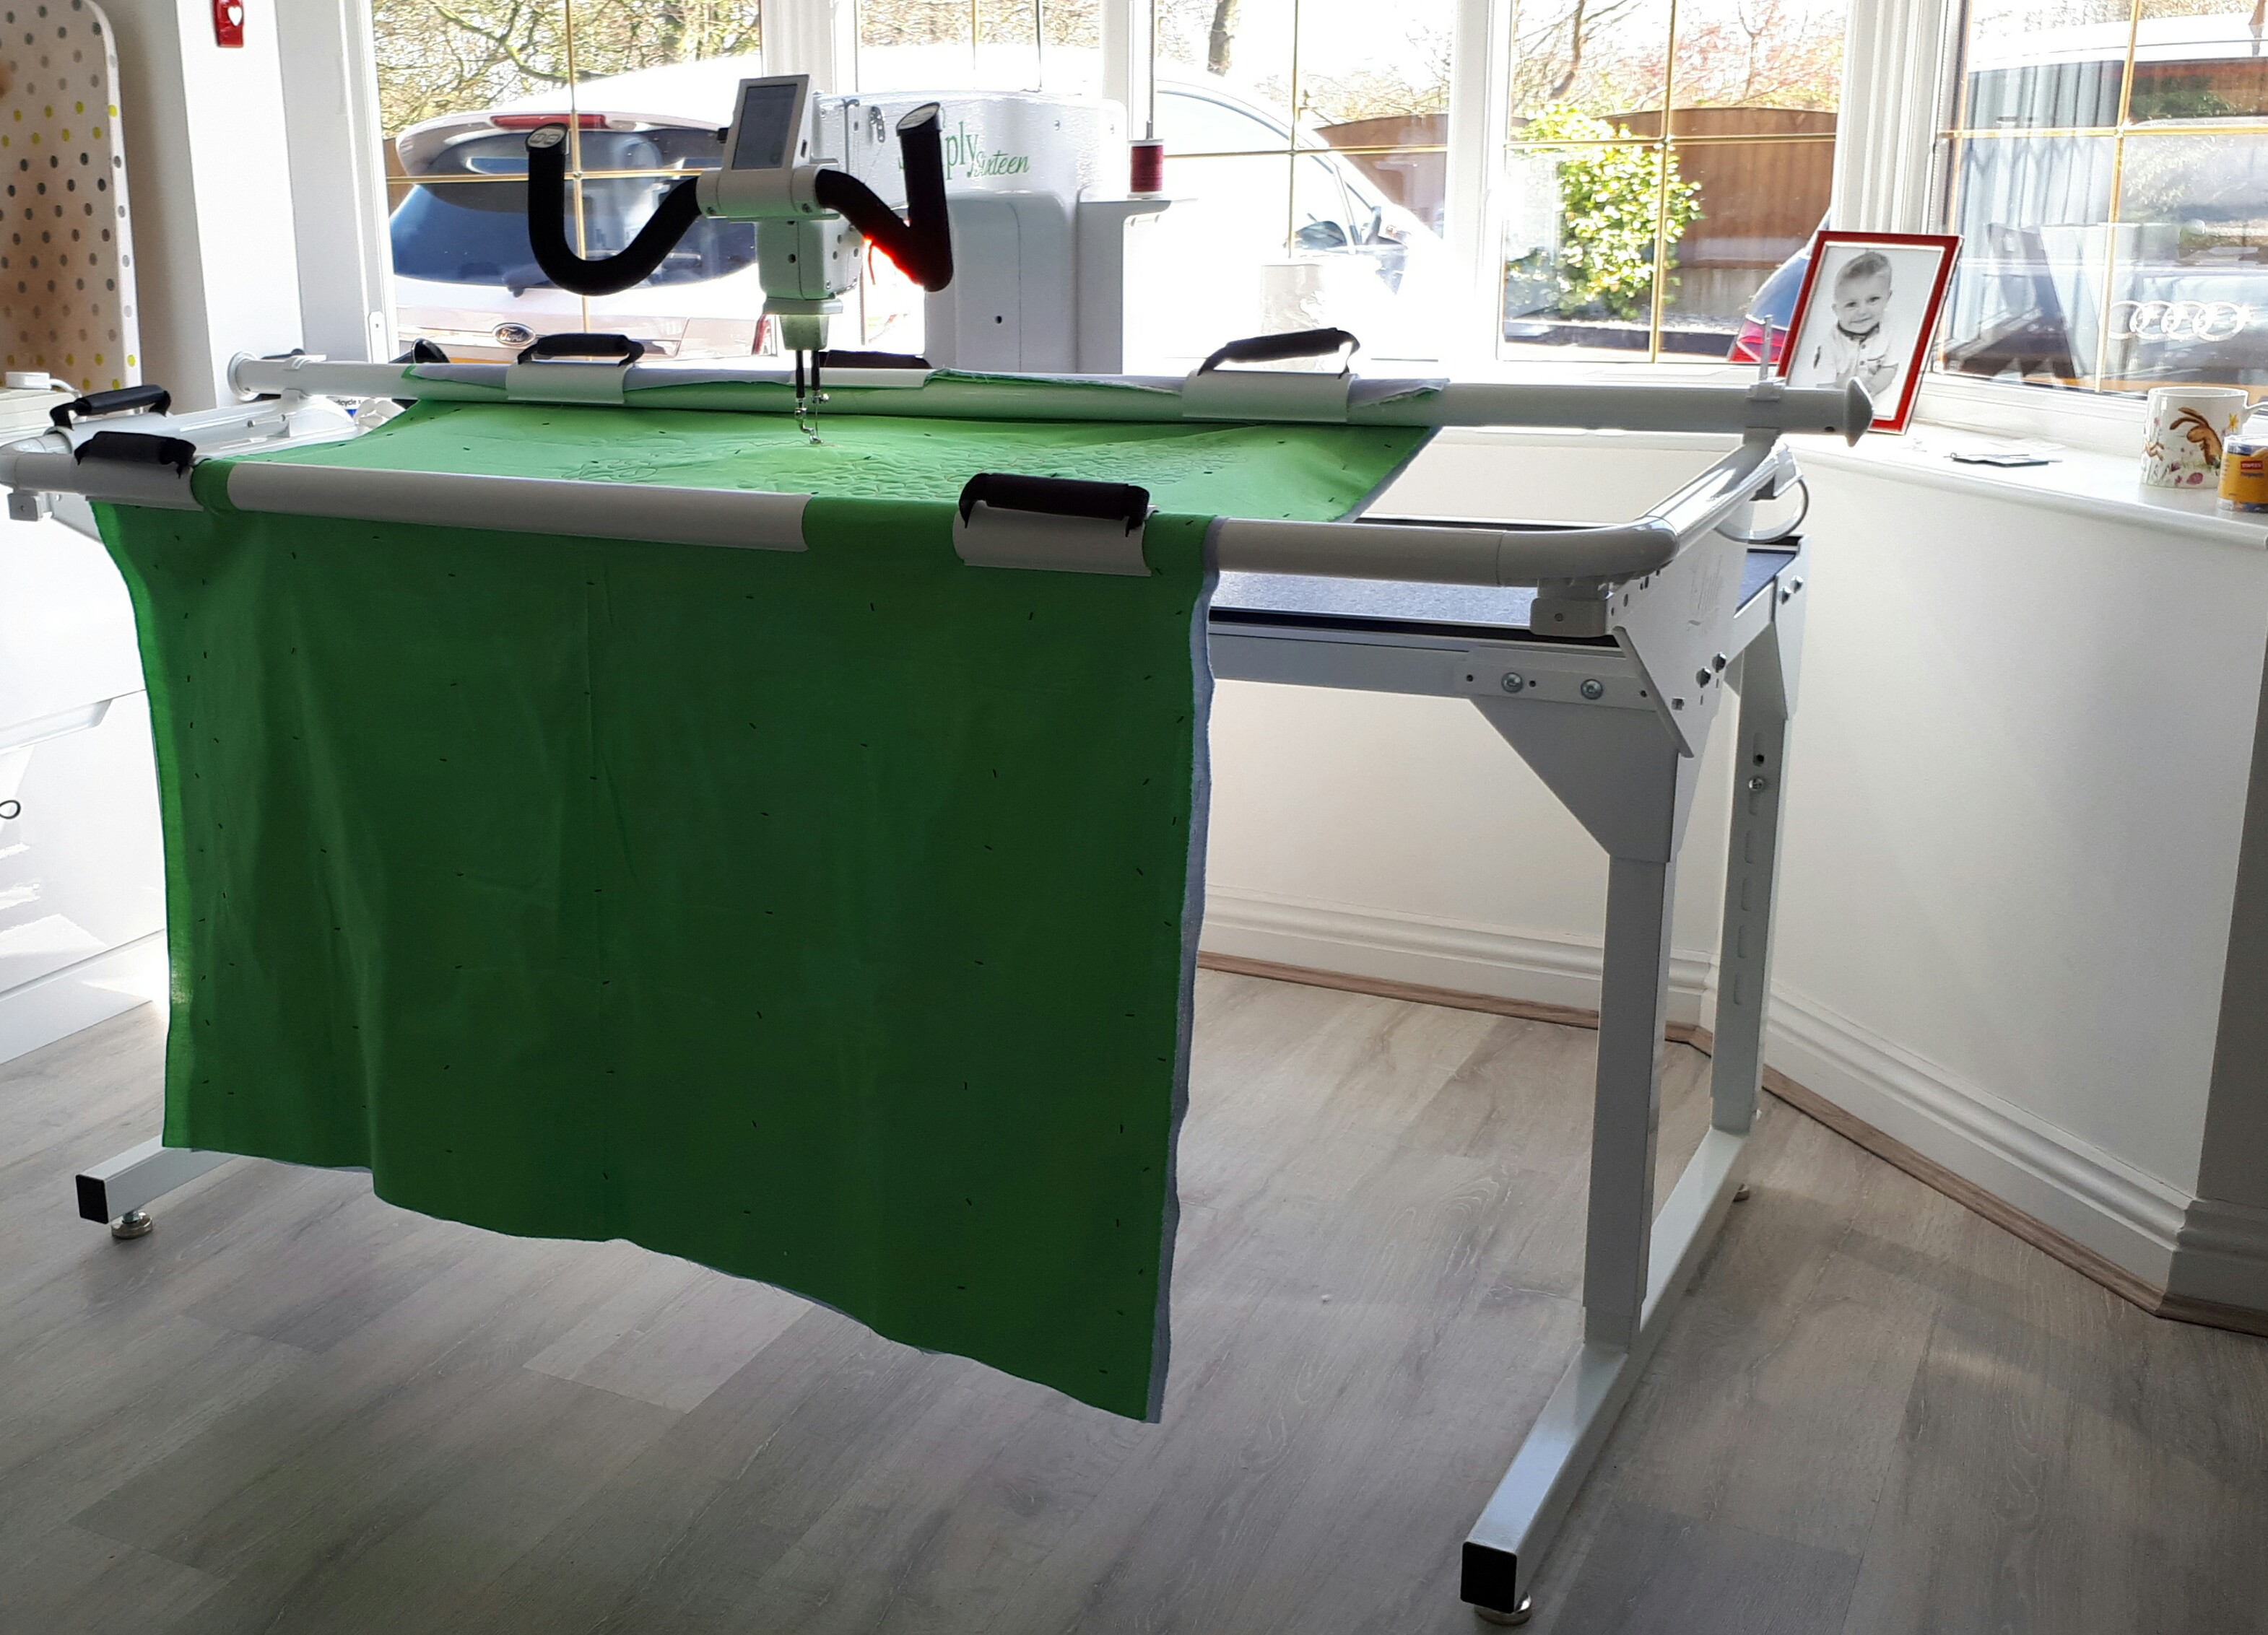 Basting Your Quilt And Cloth Leaders Longarm Quilting Machines